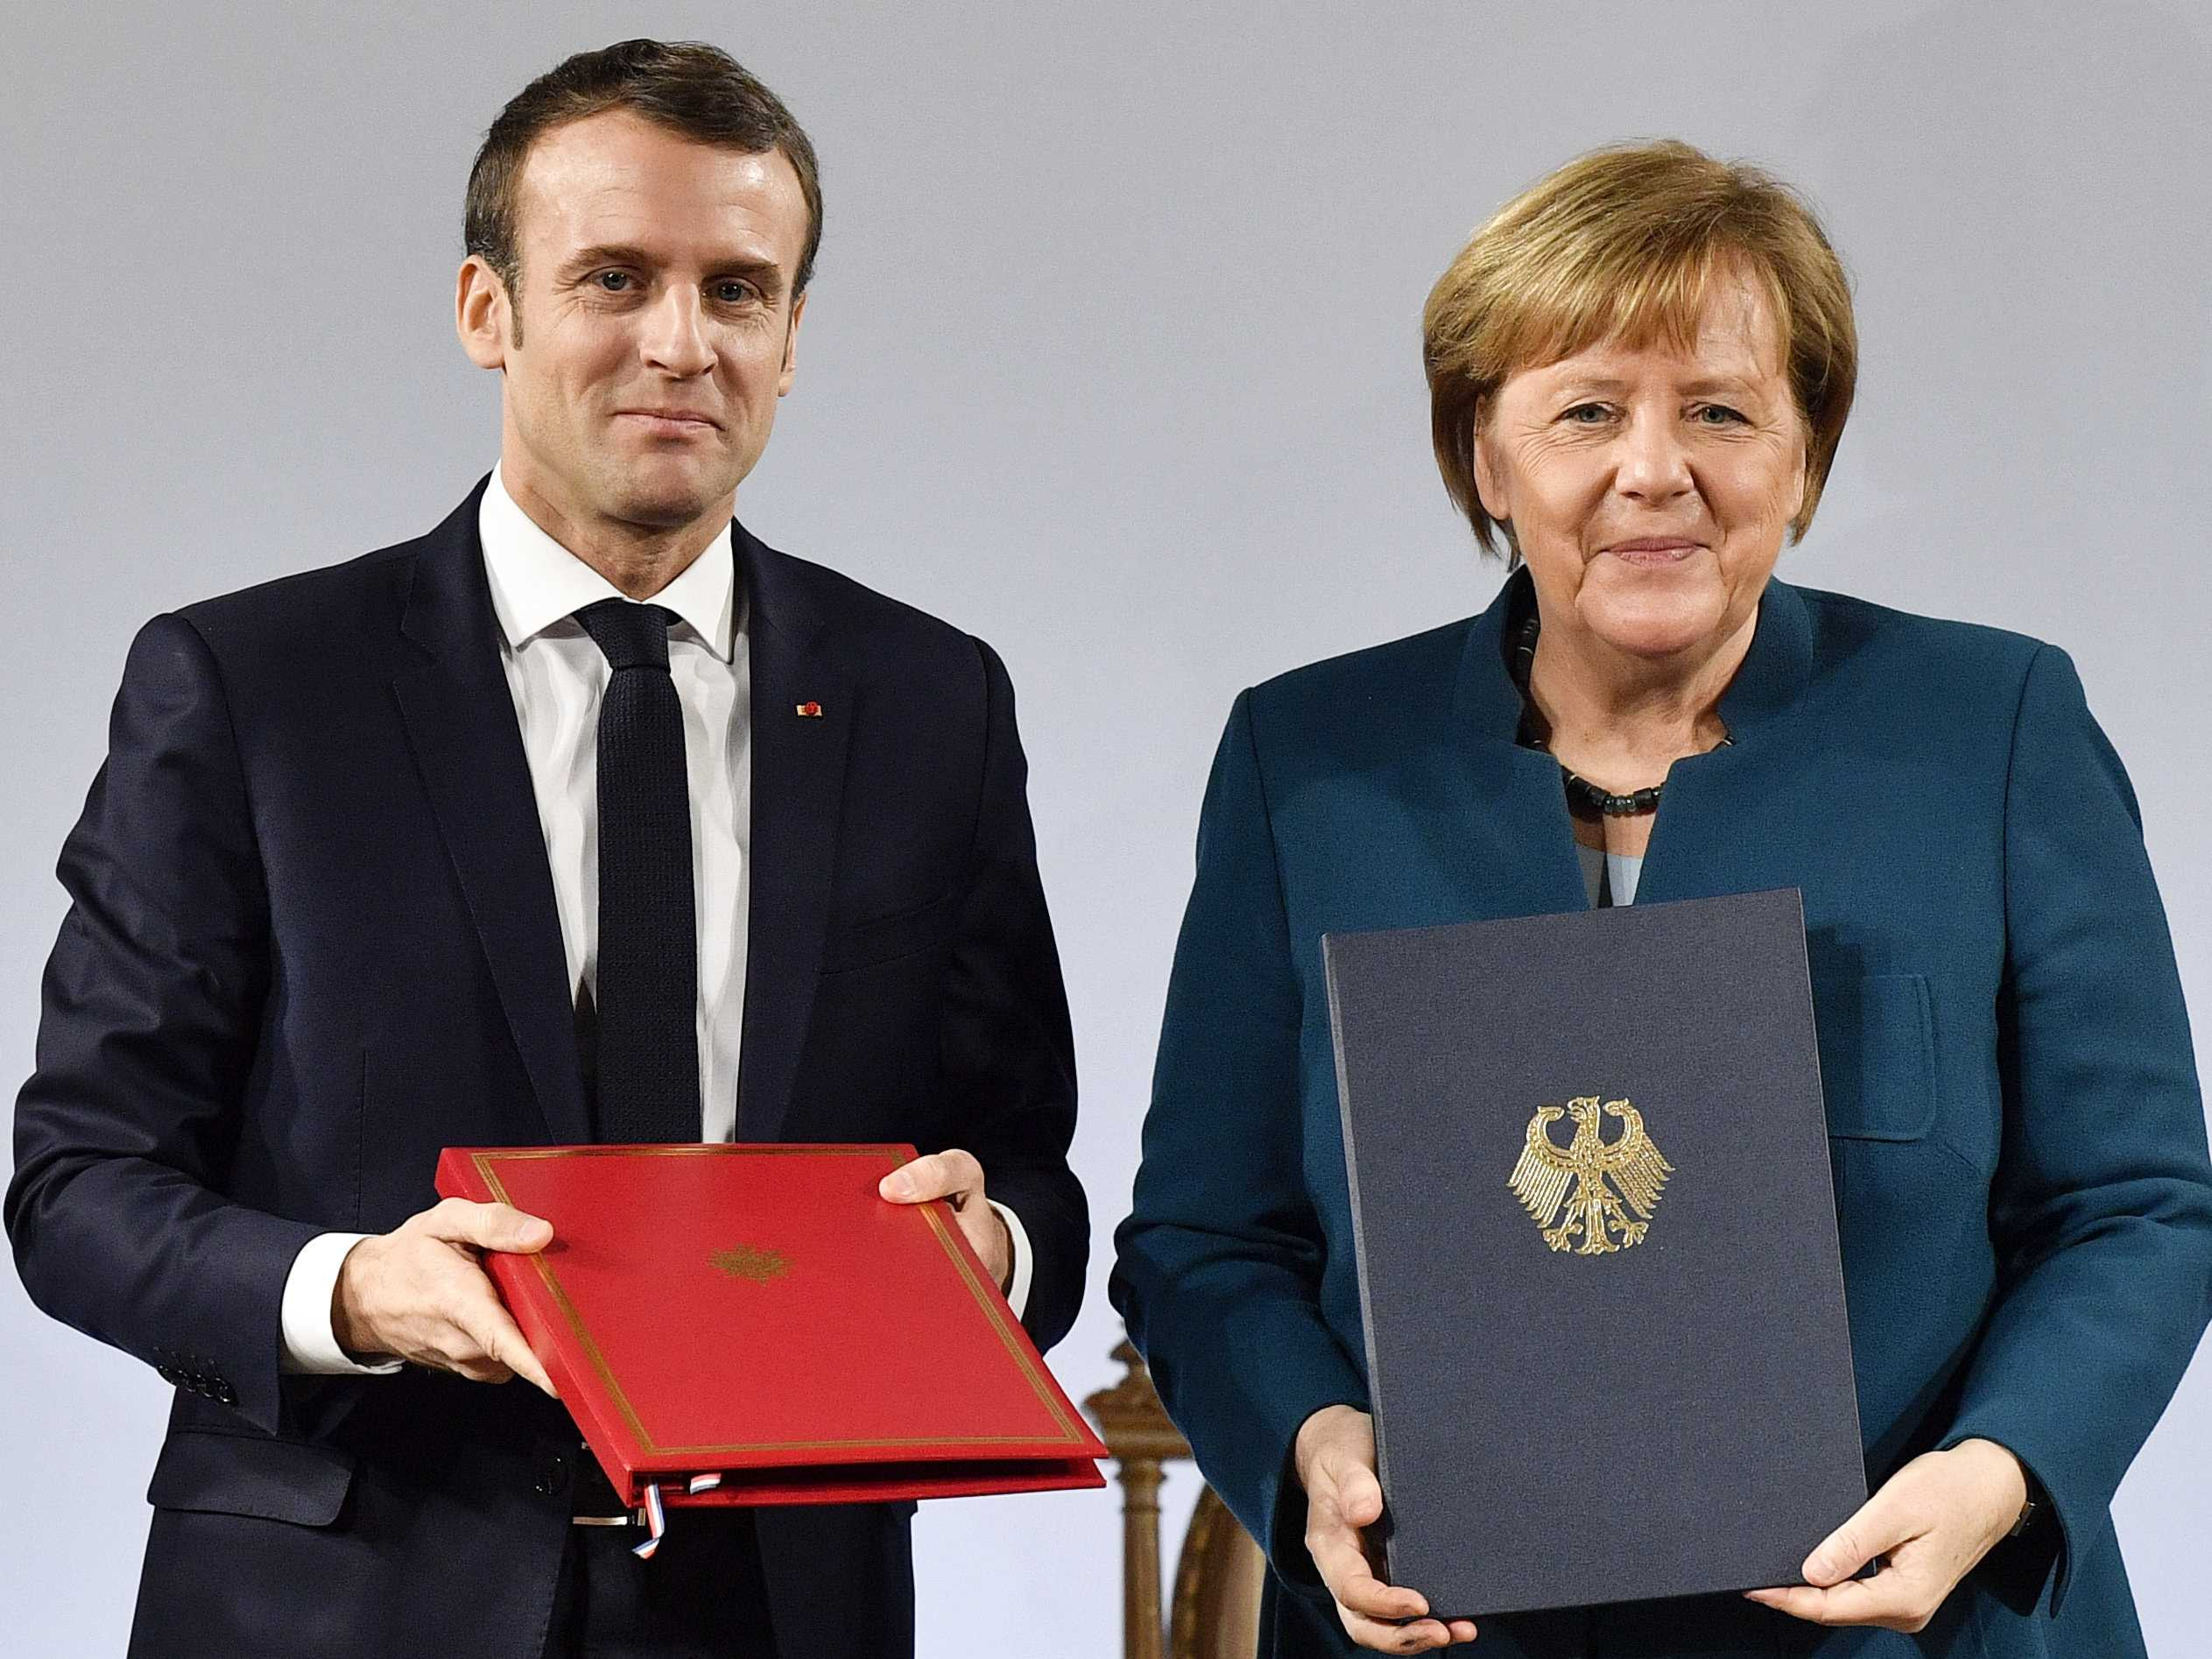 Germany, France Renew Friendship Treaty, Warn of Nationalism